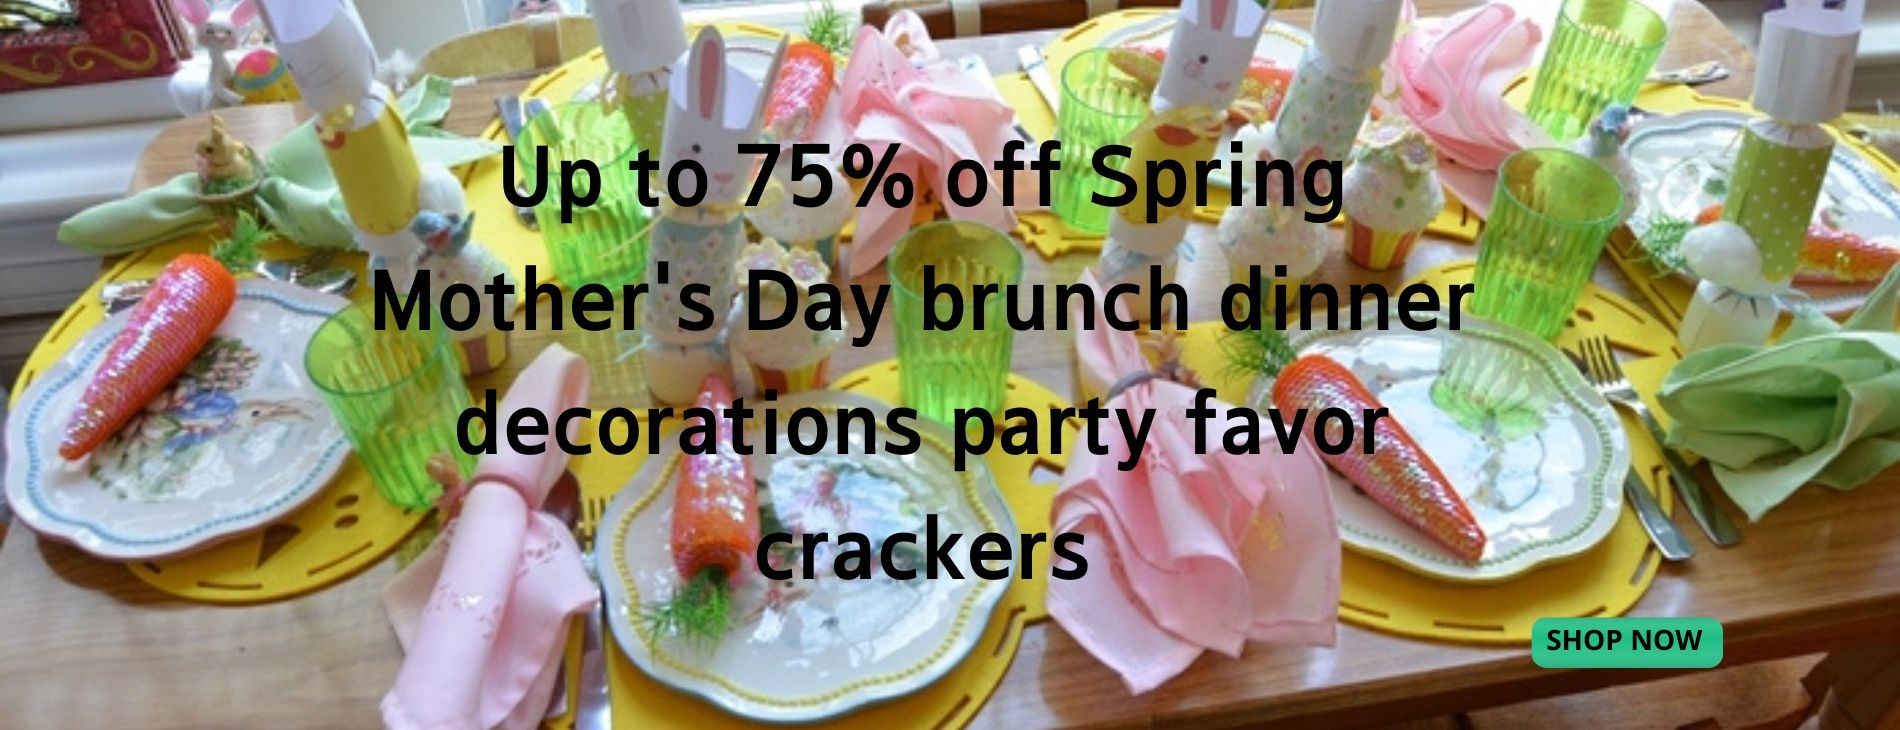 Save up to 75% off Spring Mother's Day decorations party favor crackers from BestPartyCrackers!